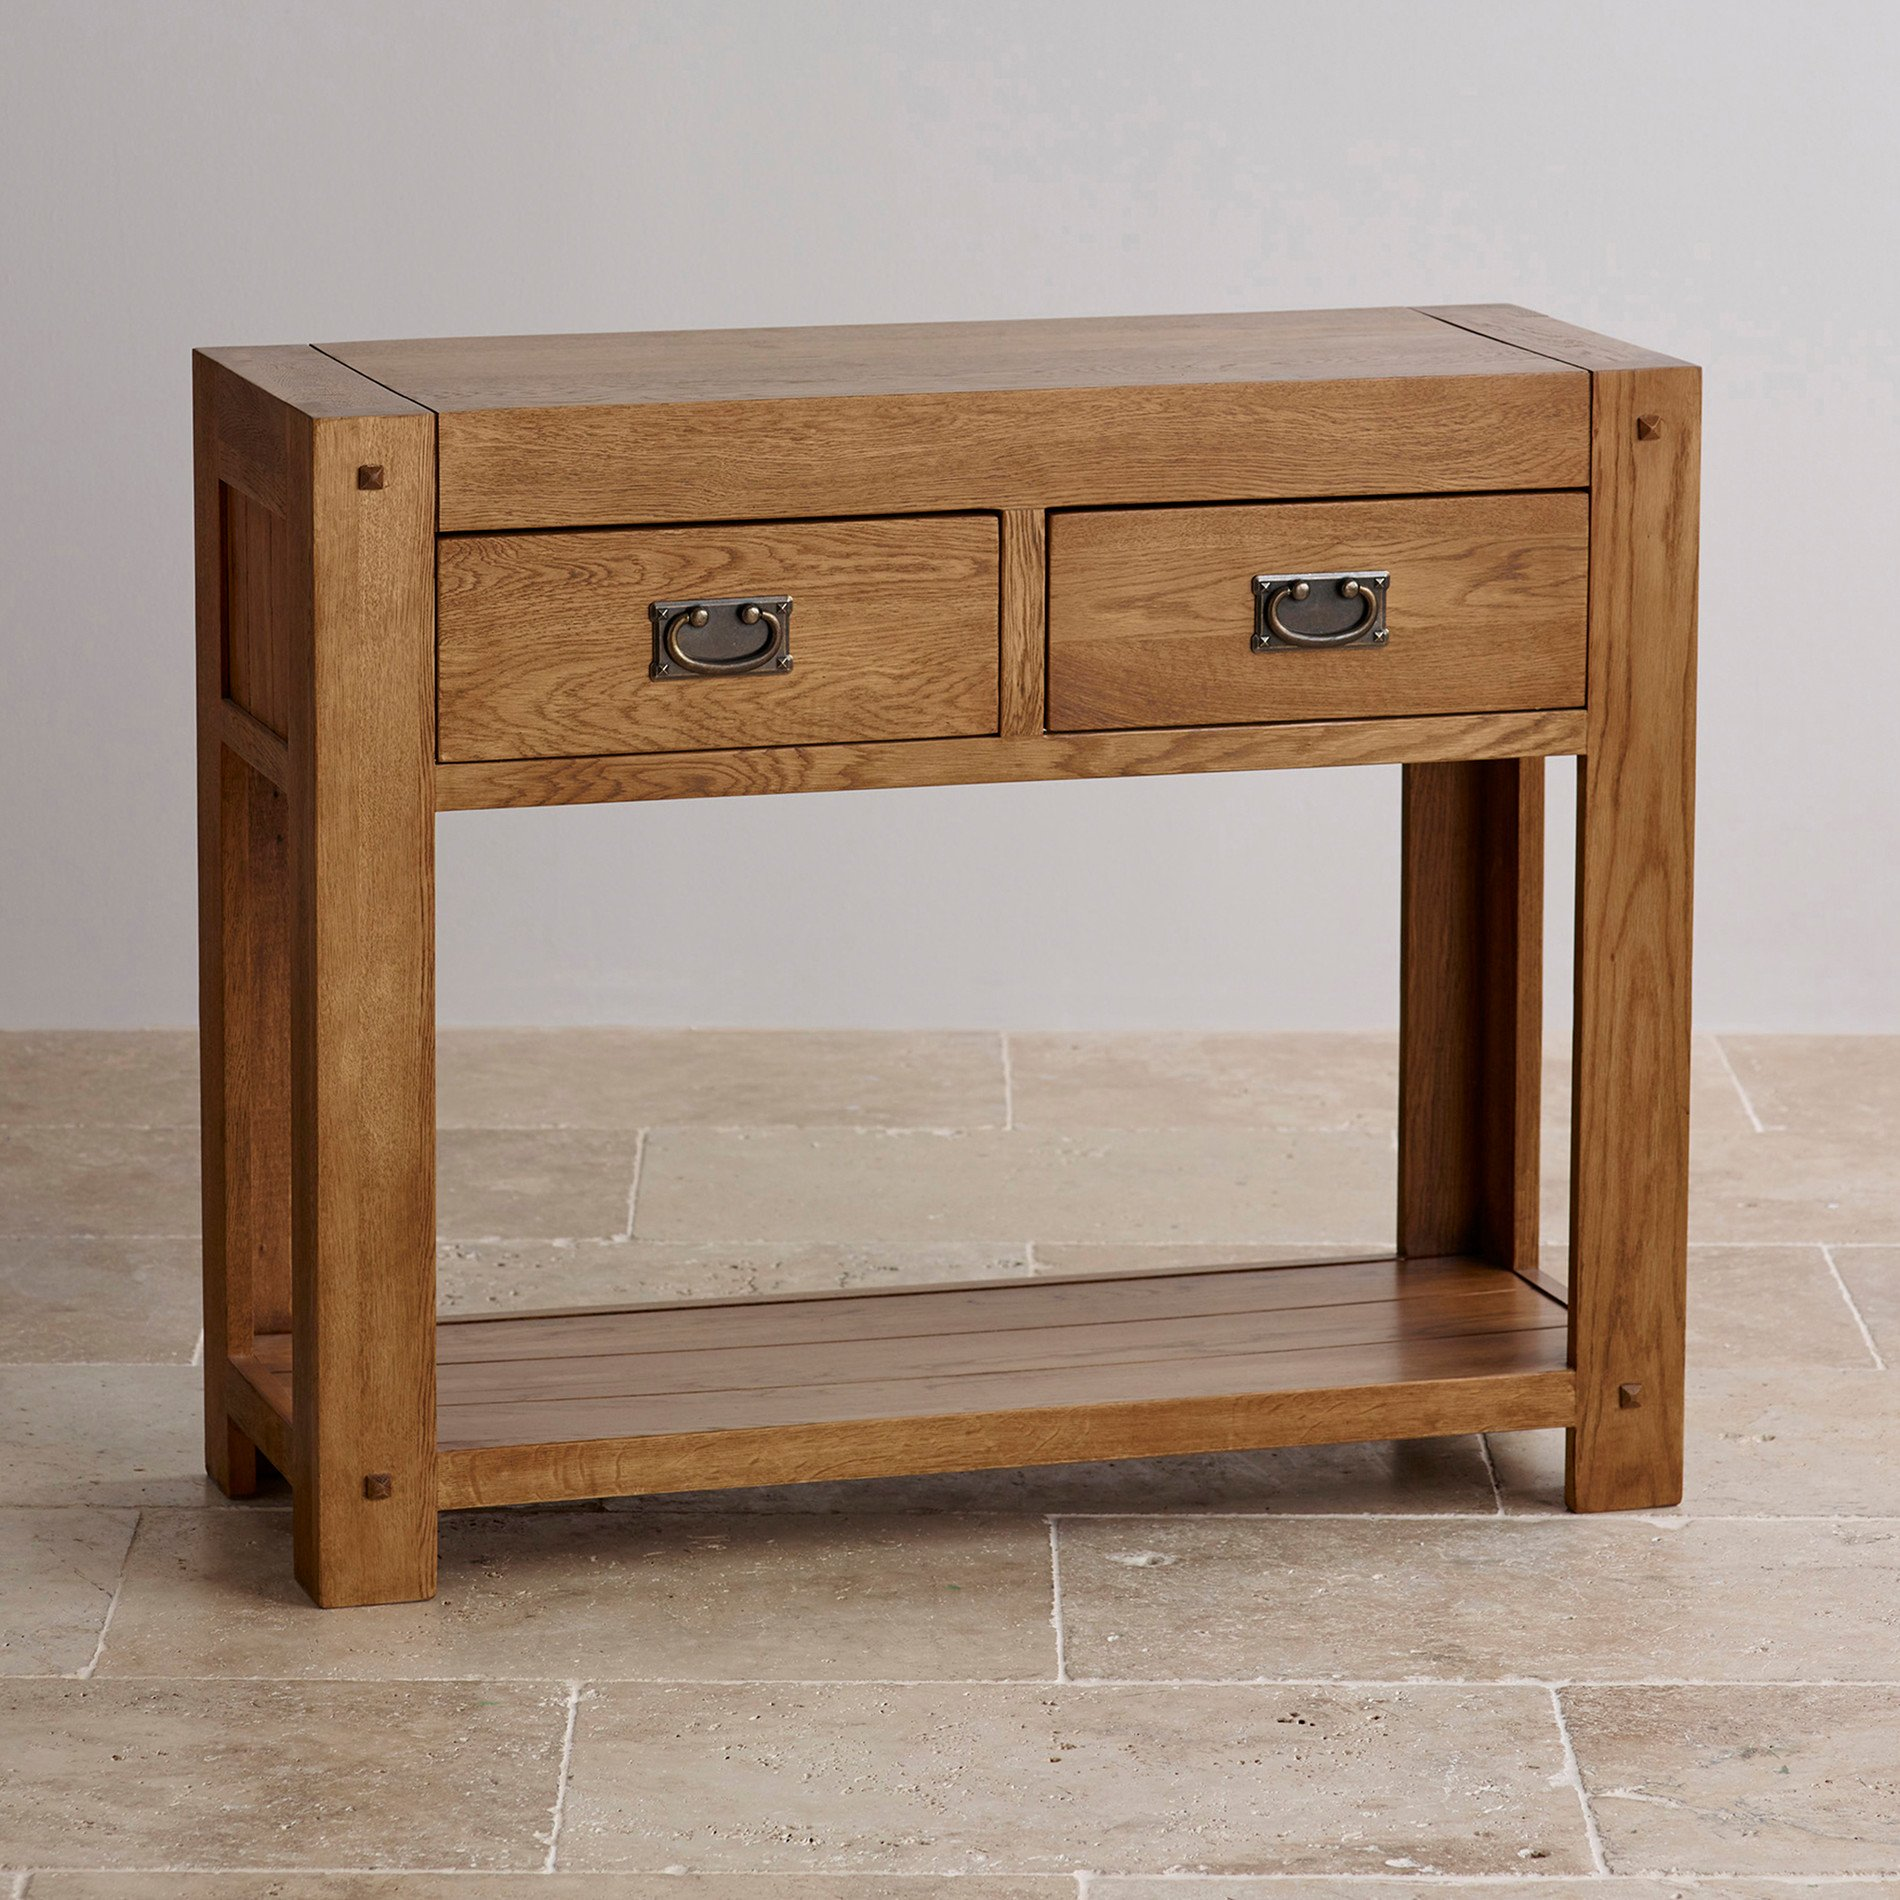 Dining Room Sets For Less Quercus Console Table In Rustic Solid Oak Oak Furniture Land